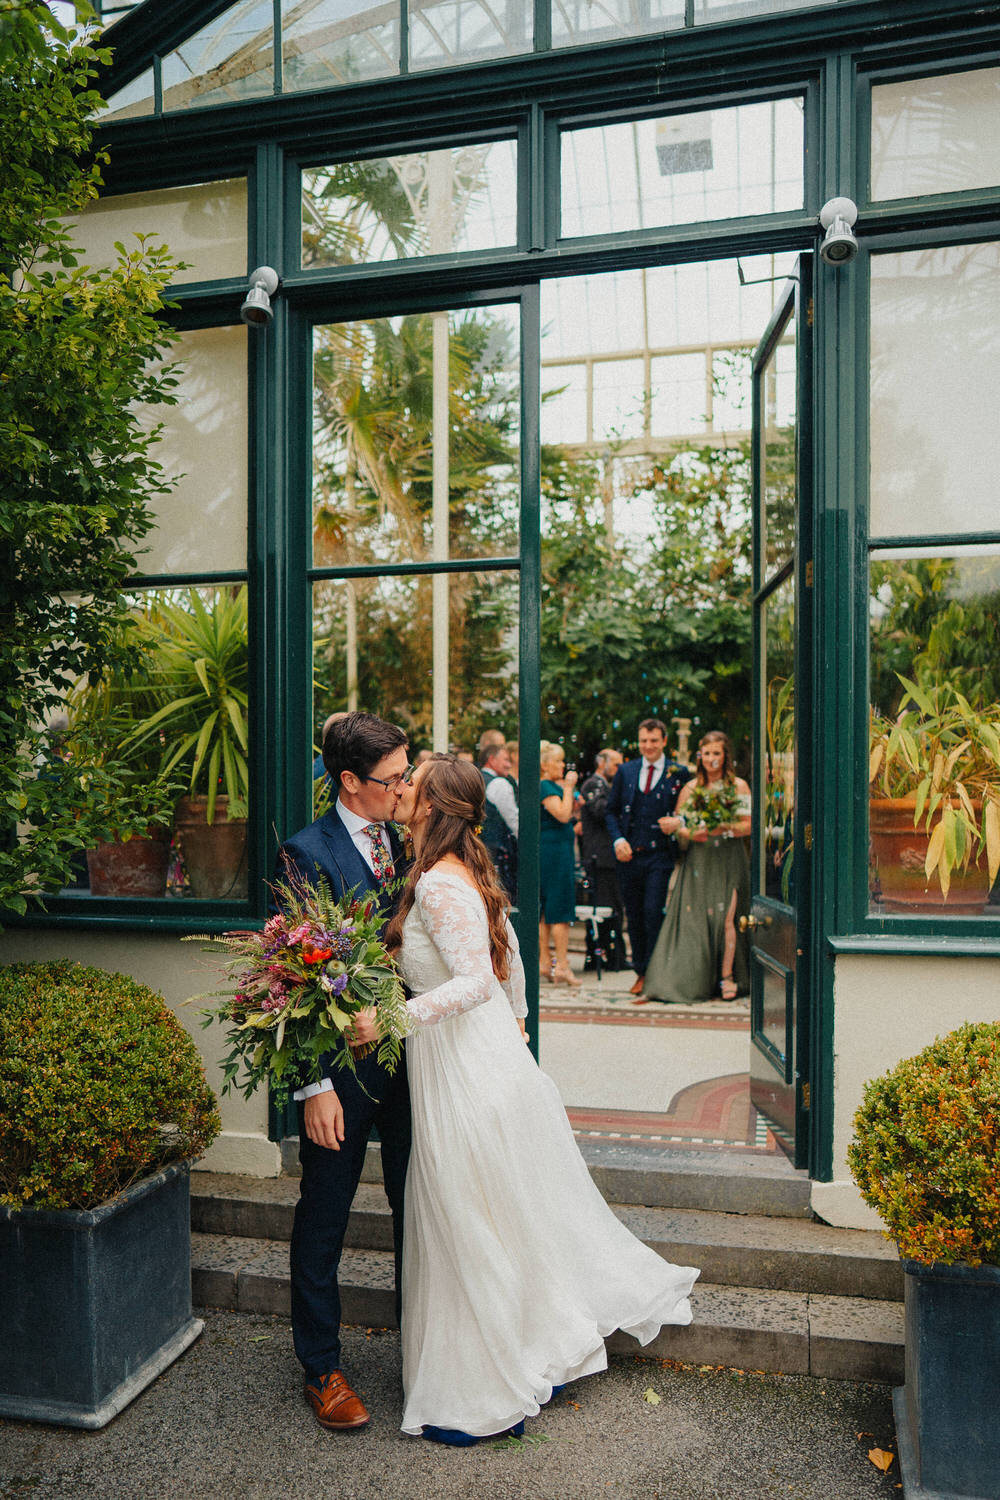 Kilshane House summer wedding celebration of Anna & Kev 62